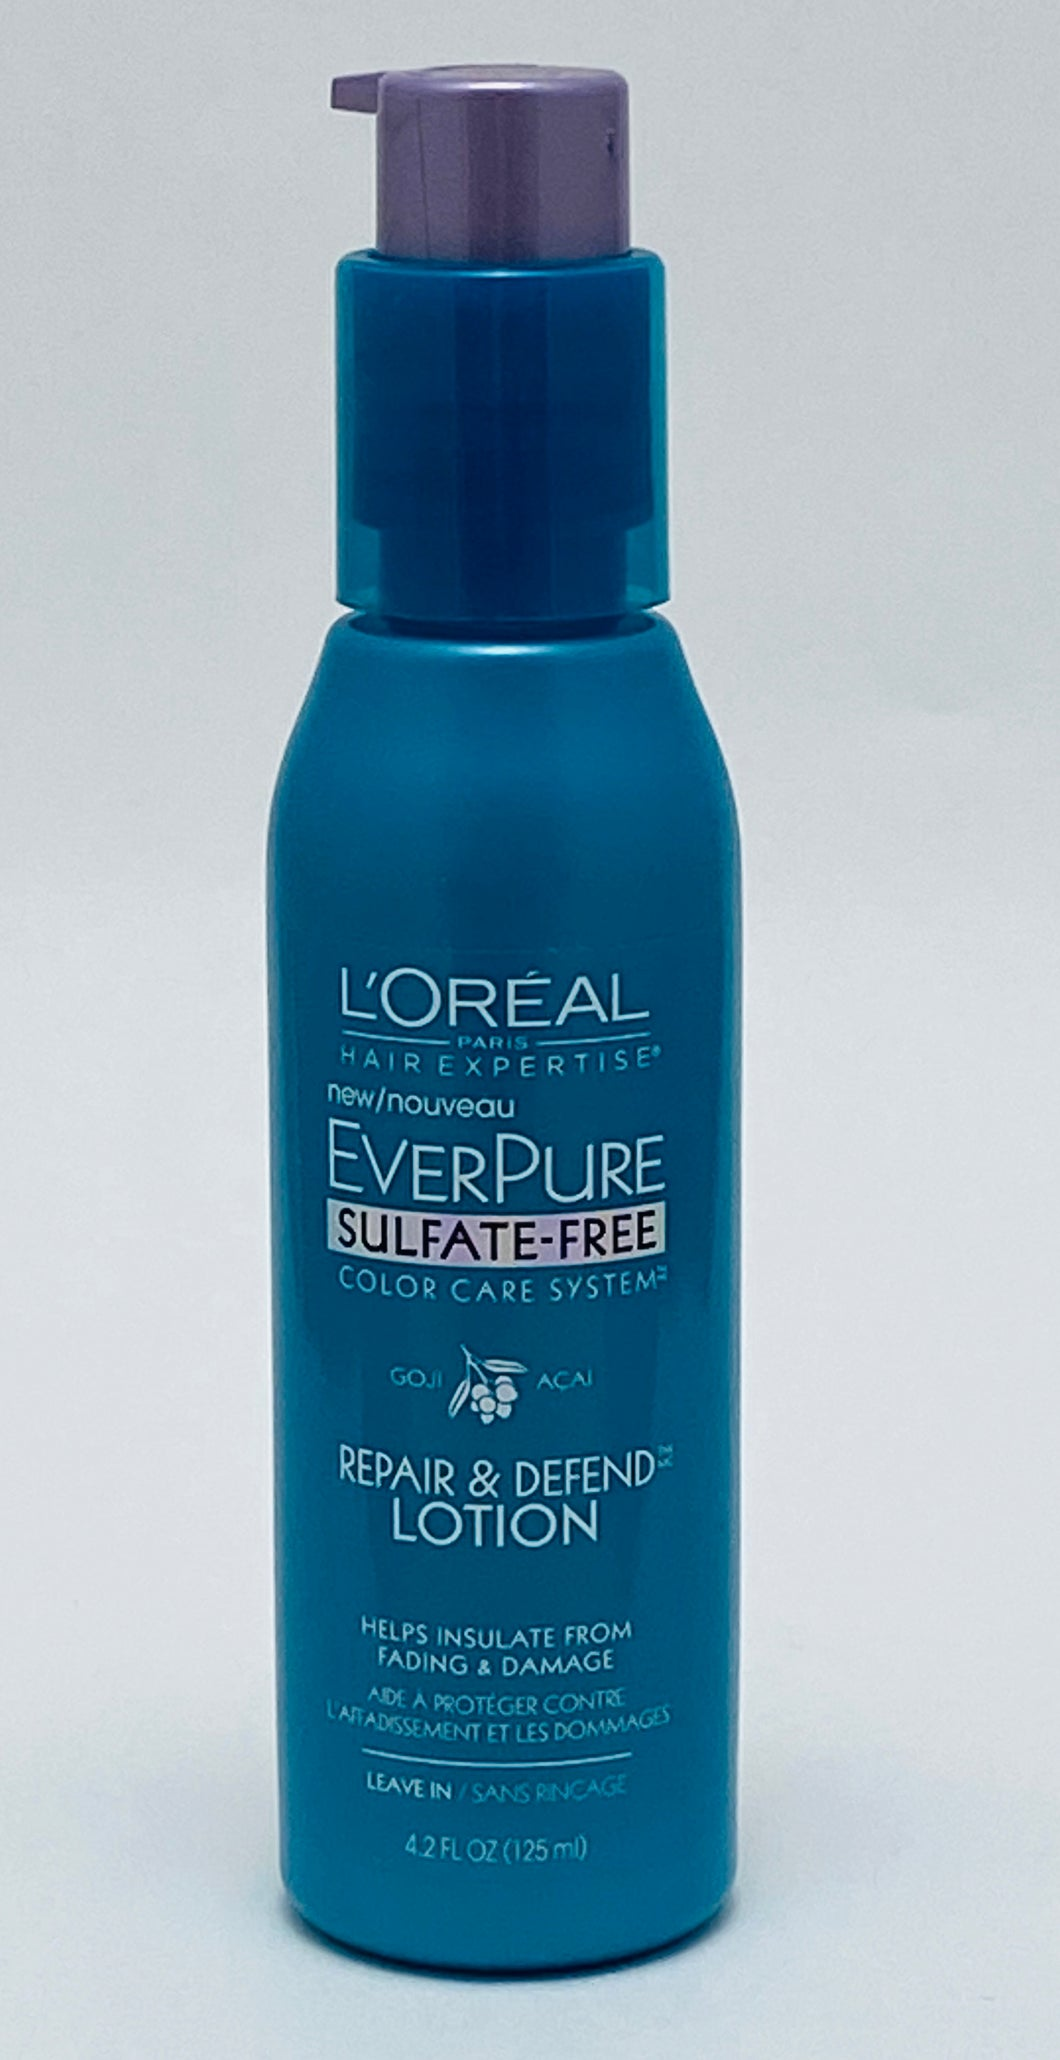 Wholesale L'oreal Ever Pure Sulfate-Free Color Care System Repair & Defend Lotion - 4.2 FL OZ. (125ml)